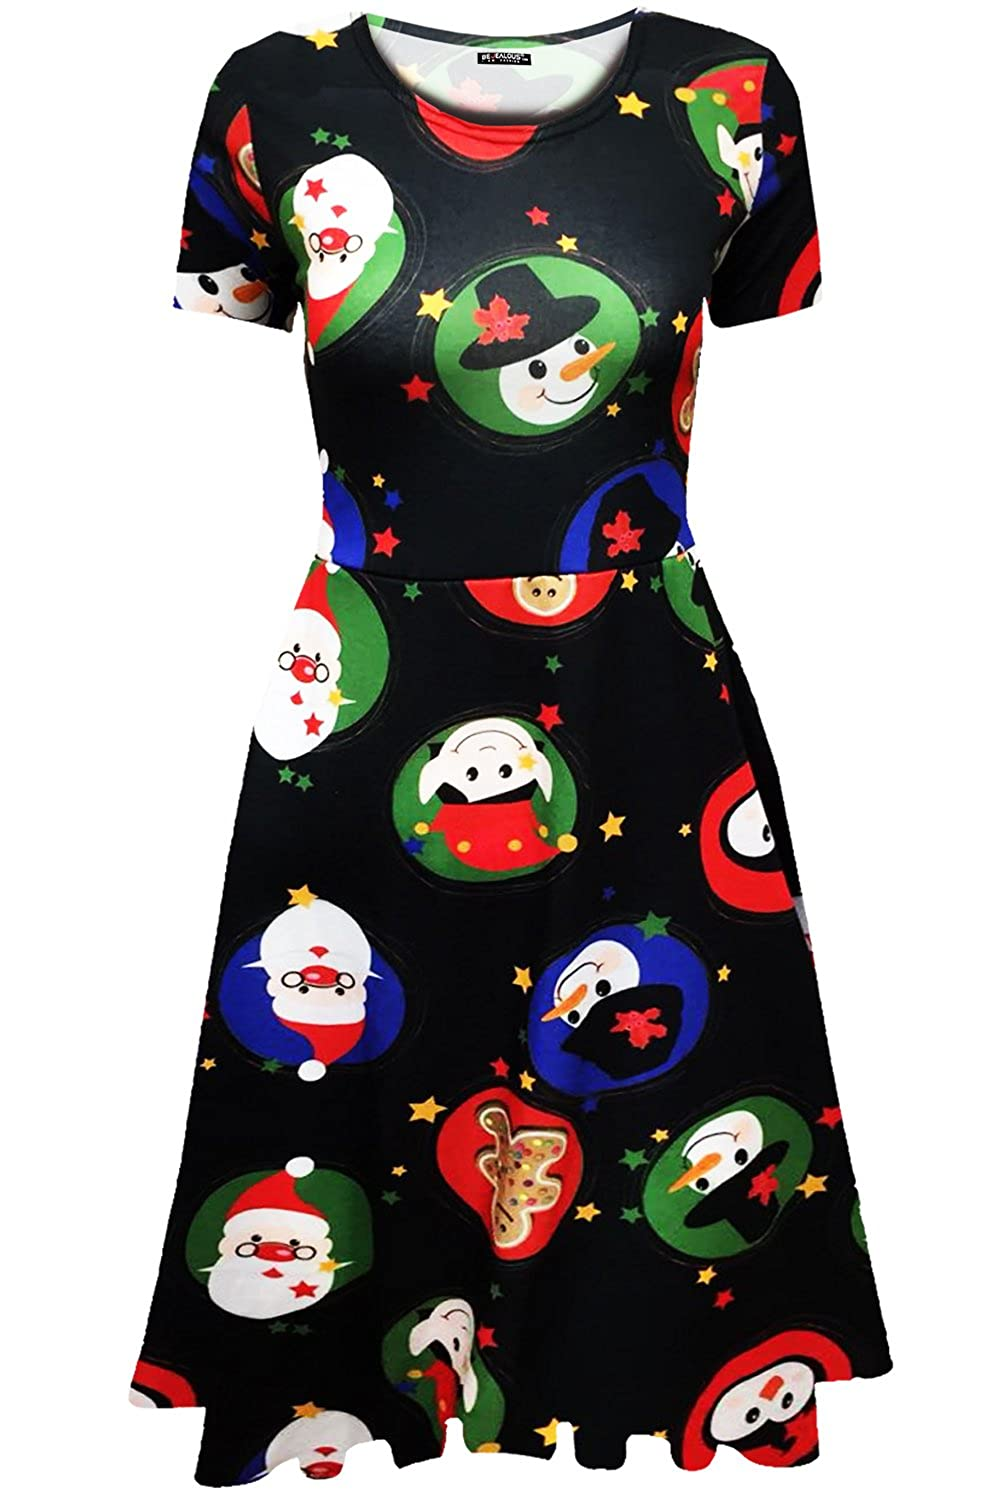 Fashion Star Womens Christmas Santa Beard Xmas Pudding Candles Candy Stick Hat Christmas Reindeer Skater Dress BE JEALOUS